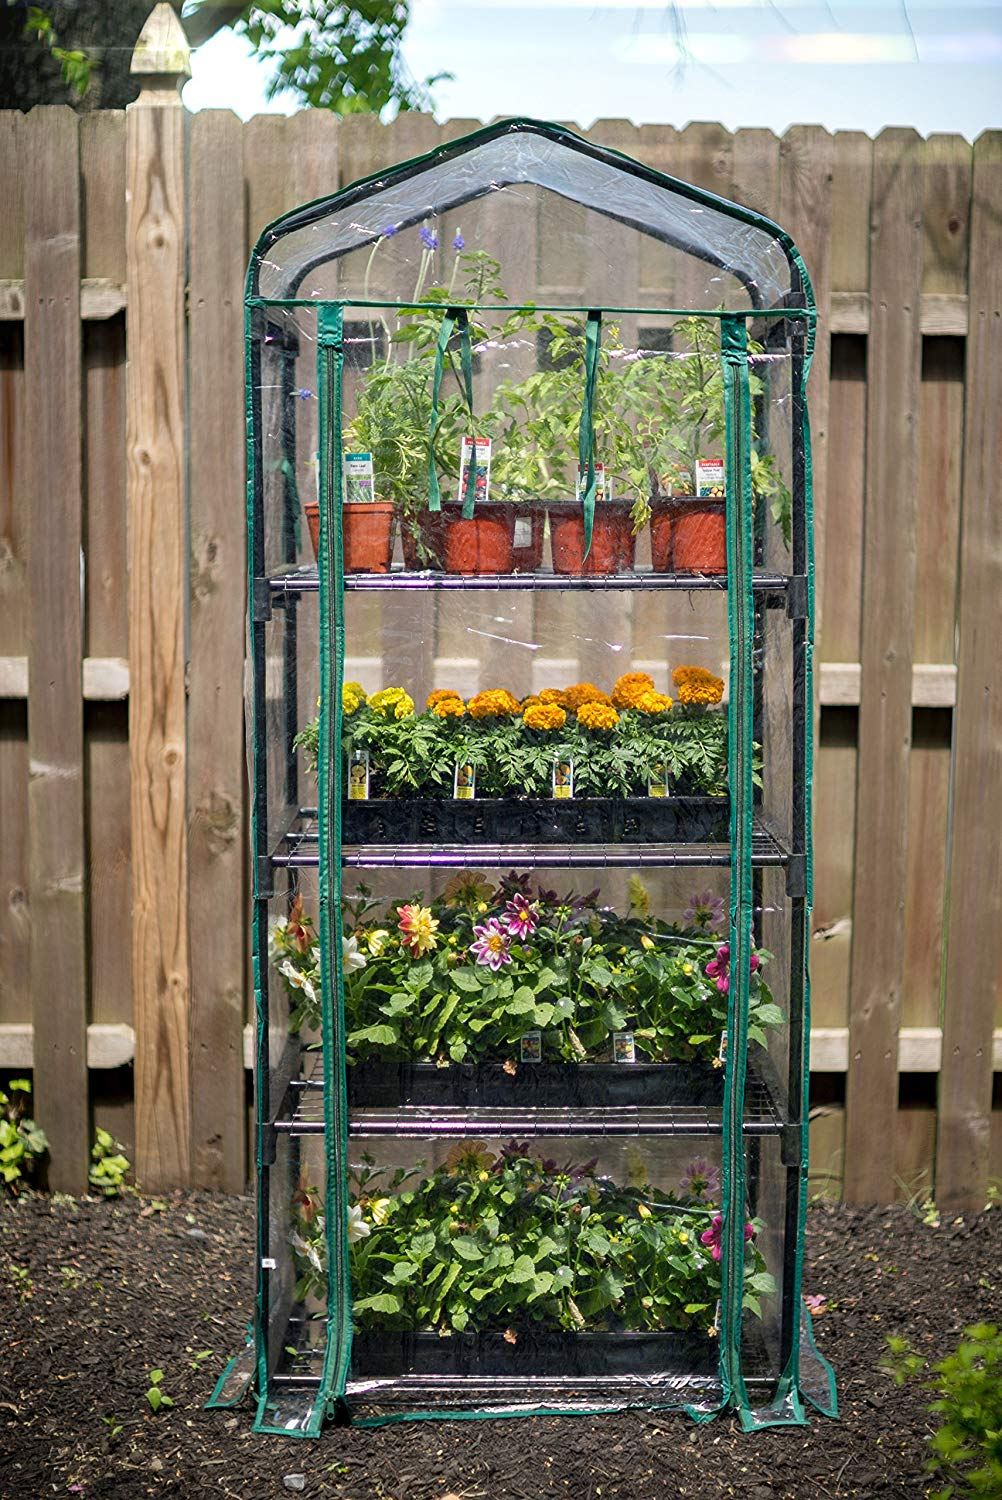 Gardman R687 4 Tier Mini Greenhouse - Wheelchair Accessible Farming and Gardening